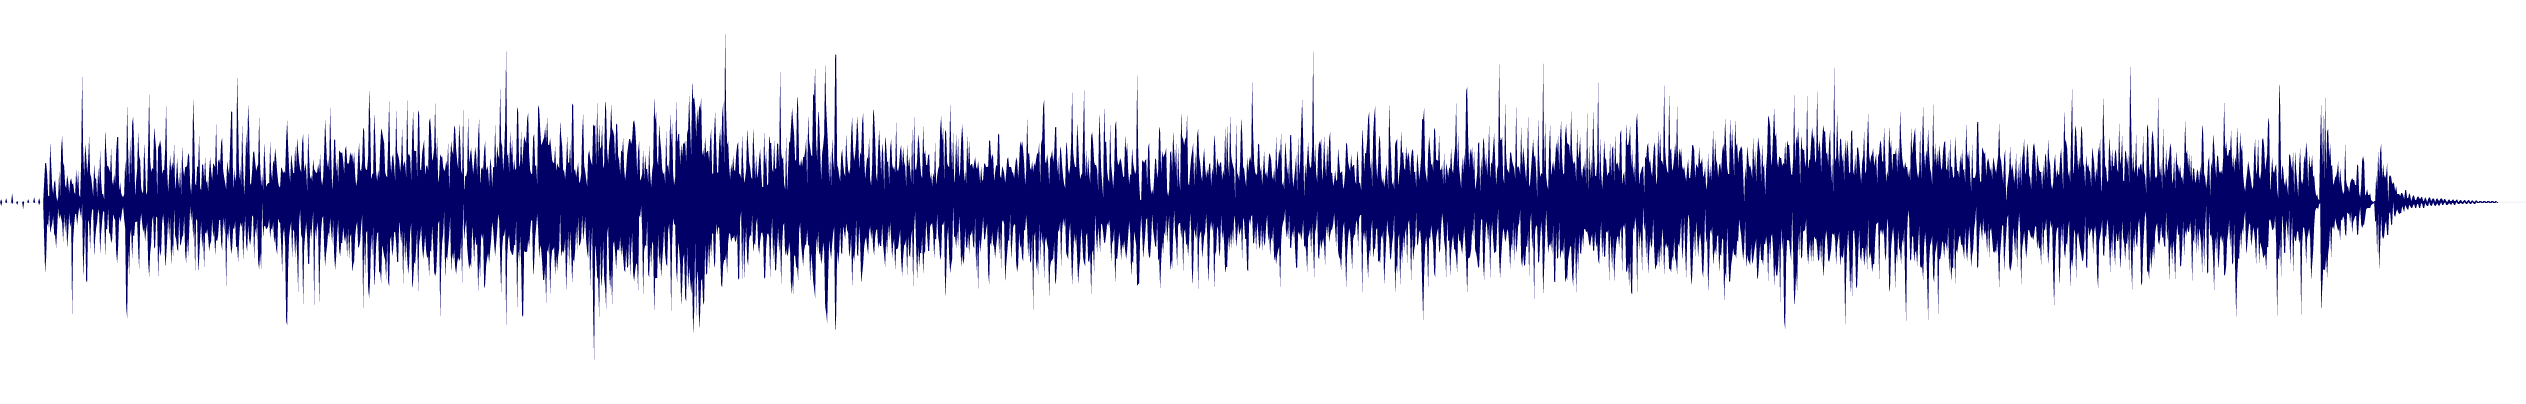 waveform of track #101044